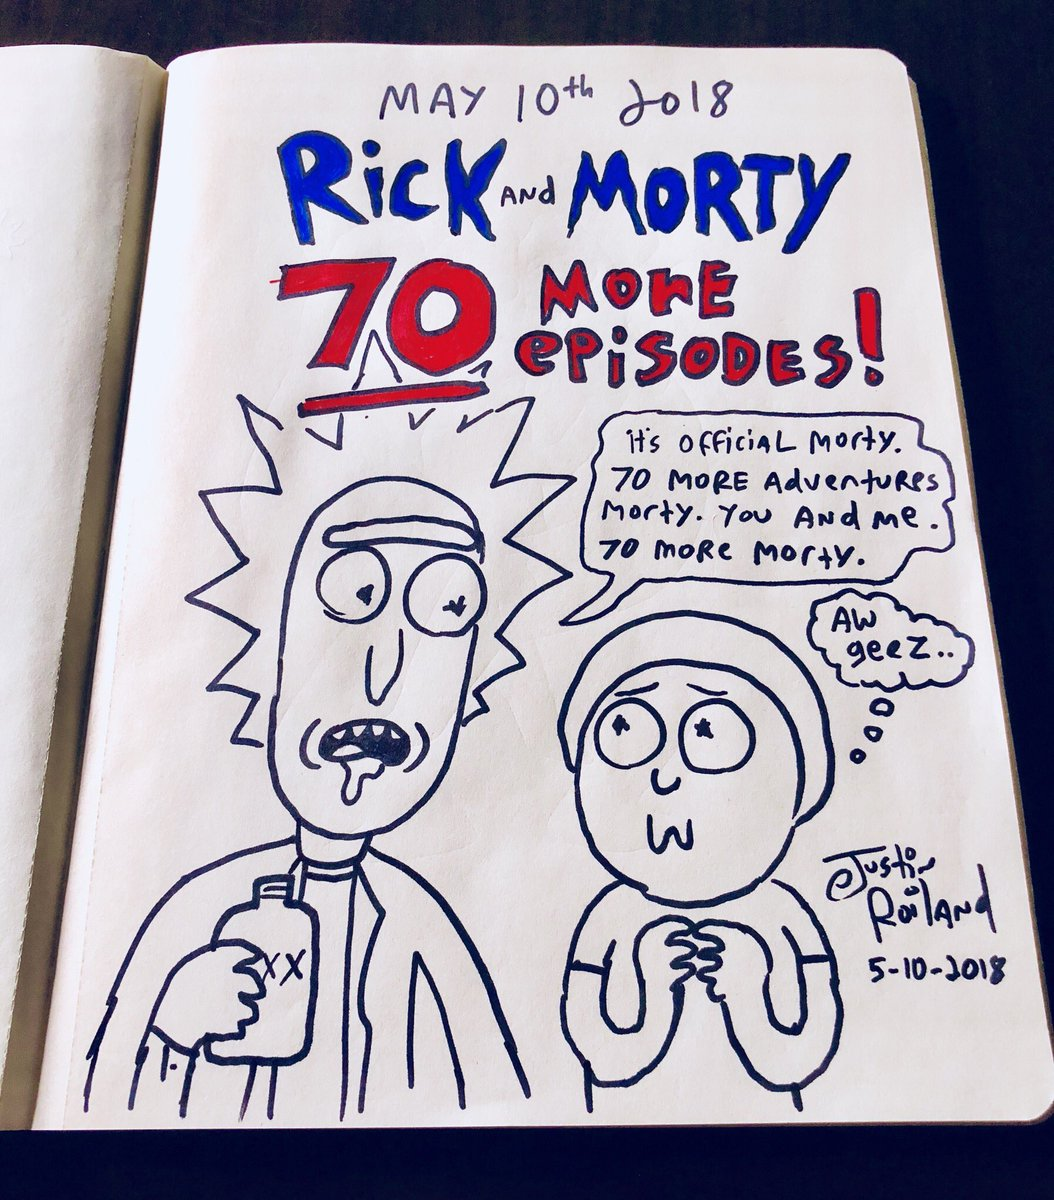 The Wertzone: RICK & MORTY renewed for 70 episodes